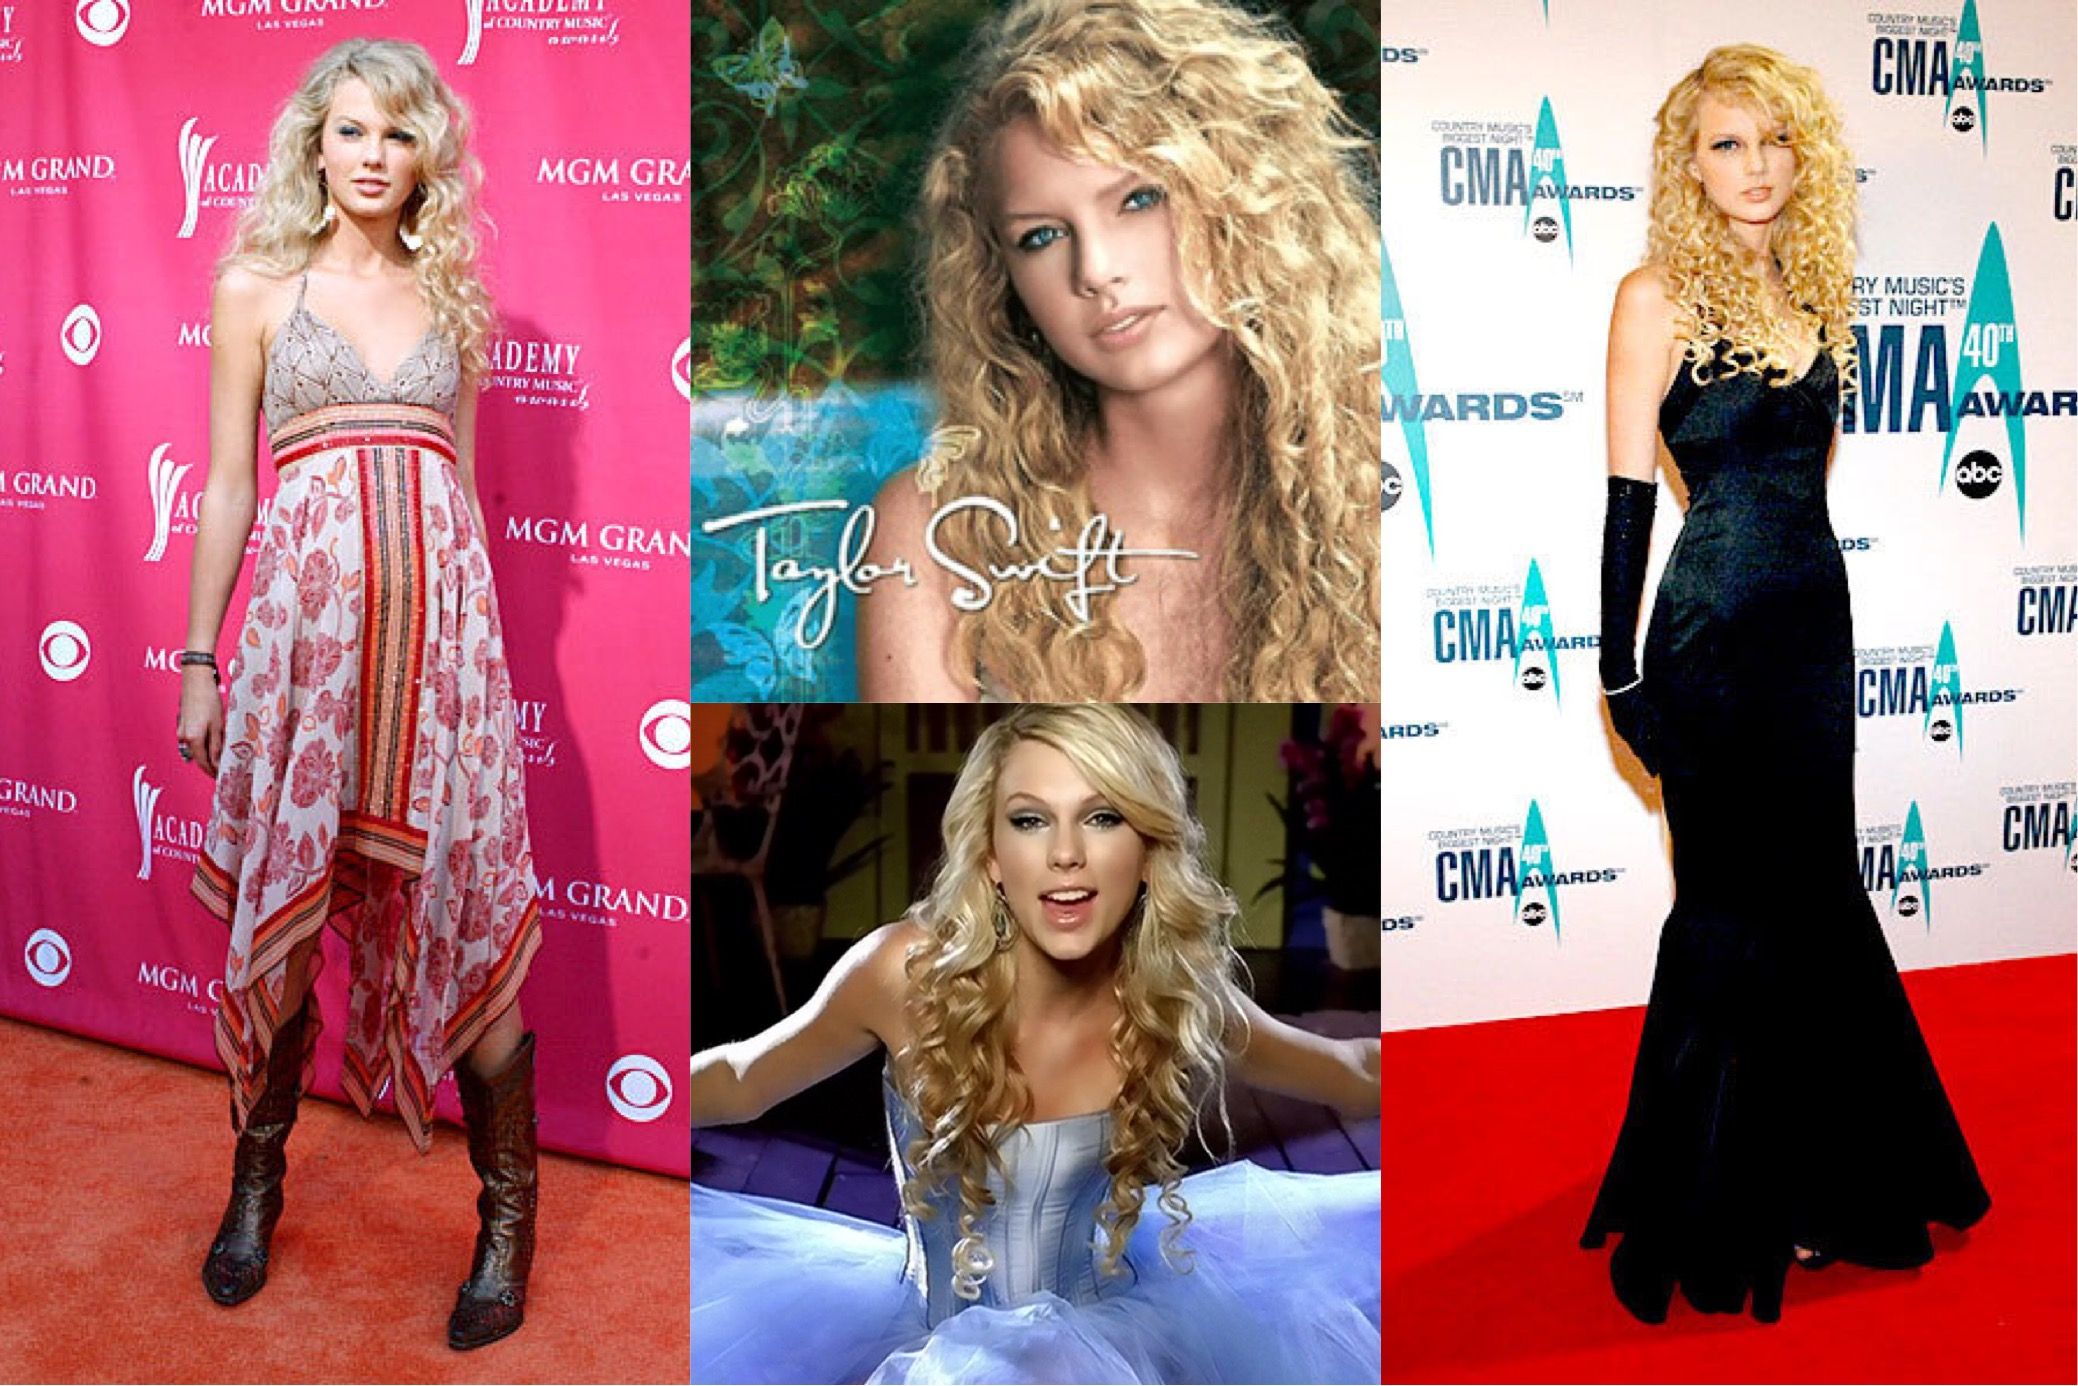 """Taylor Swift at the 2006 Annual Academy of Country Music Awards,  Taylor Swift  (2006) album cover, """"Our Song"""" music video (2006), & 2006 Country Music Awards  (Photo:  Getty Images, People, Playbuzz )"""